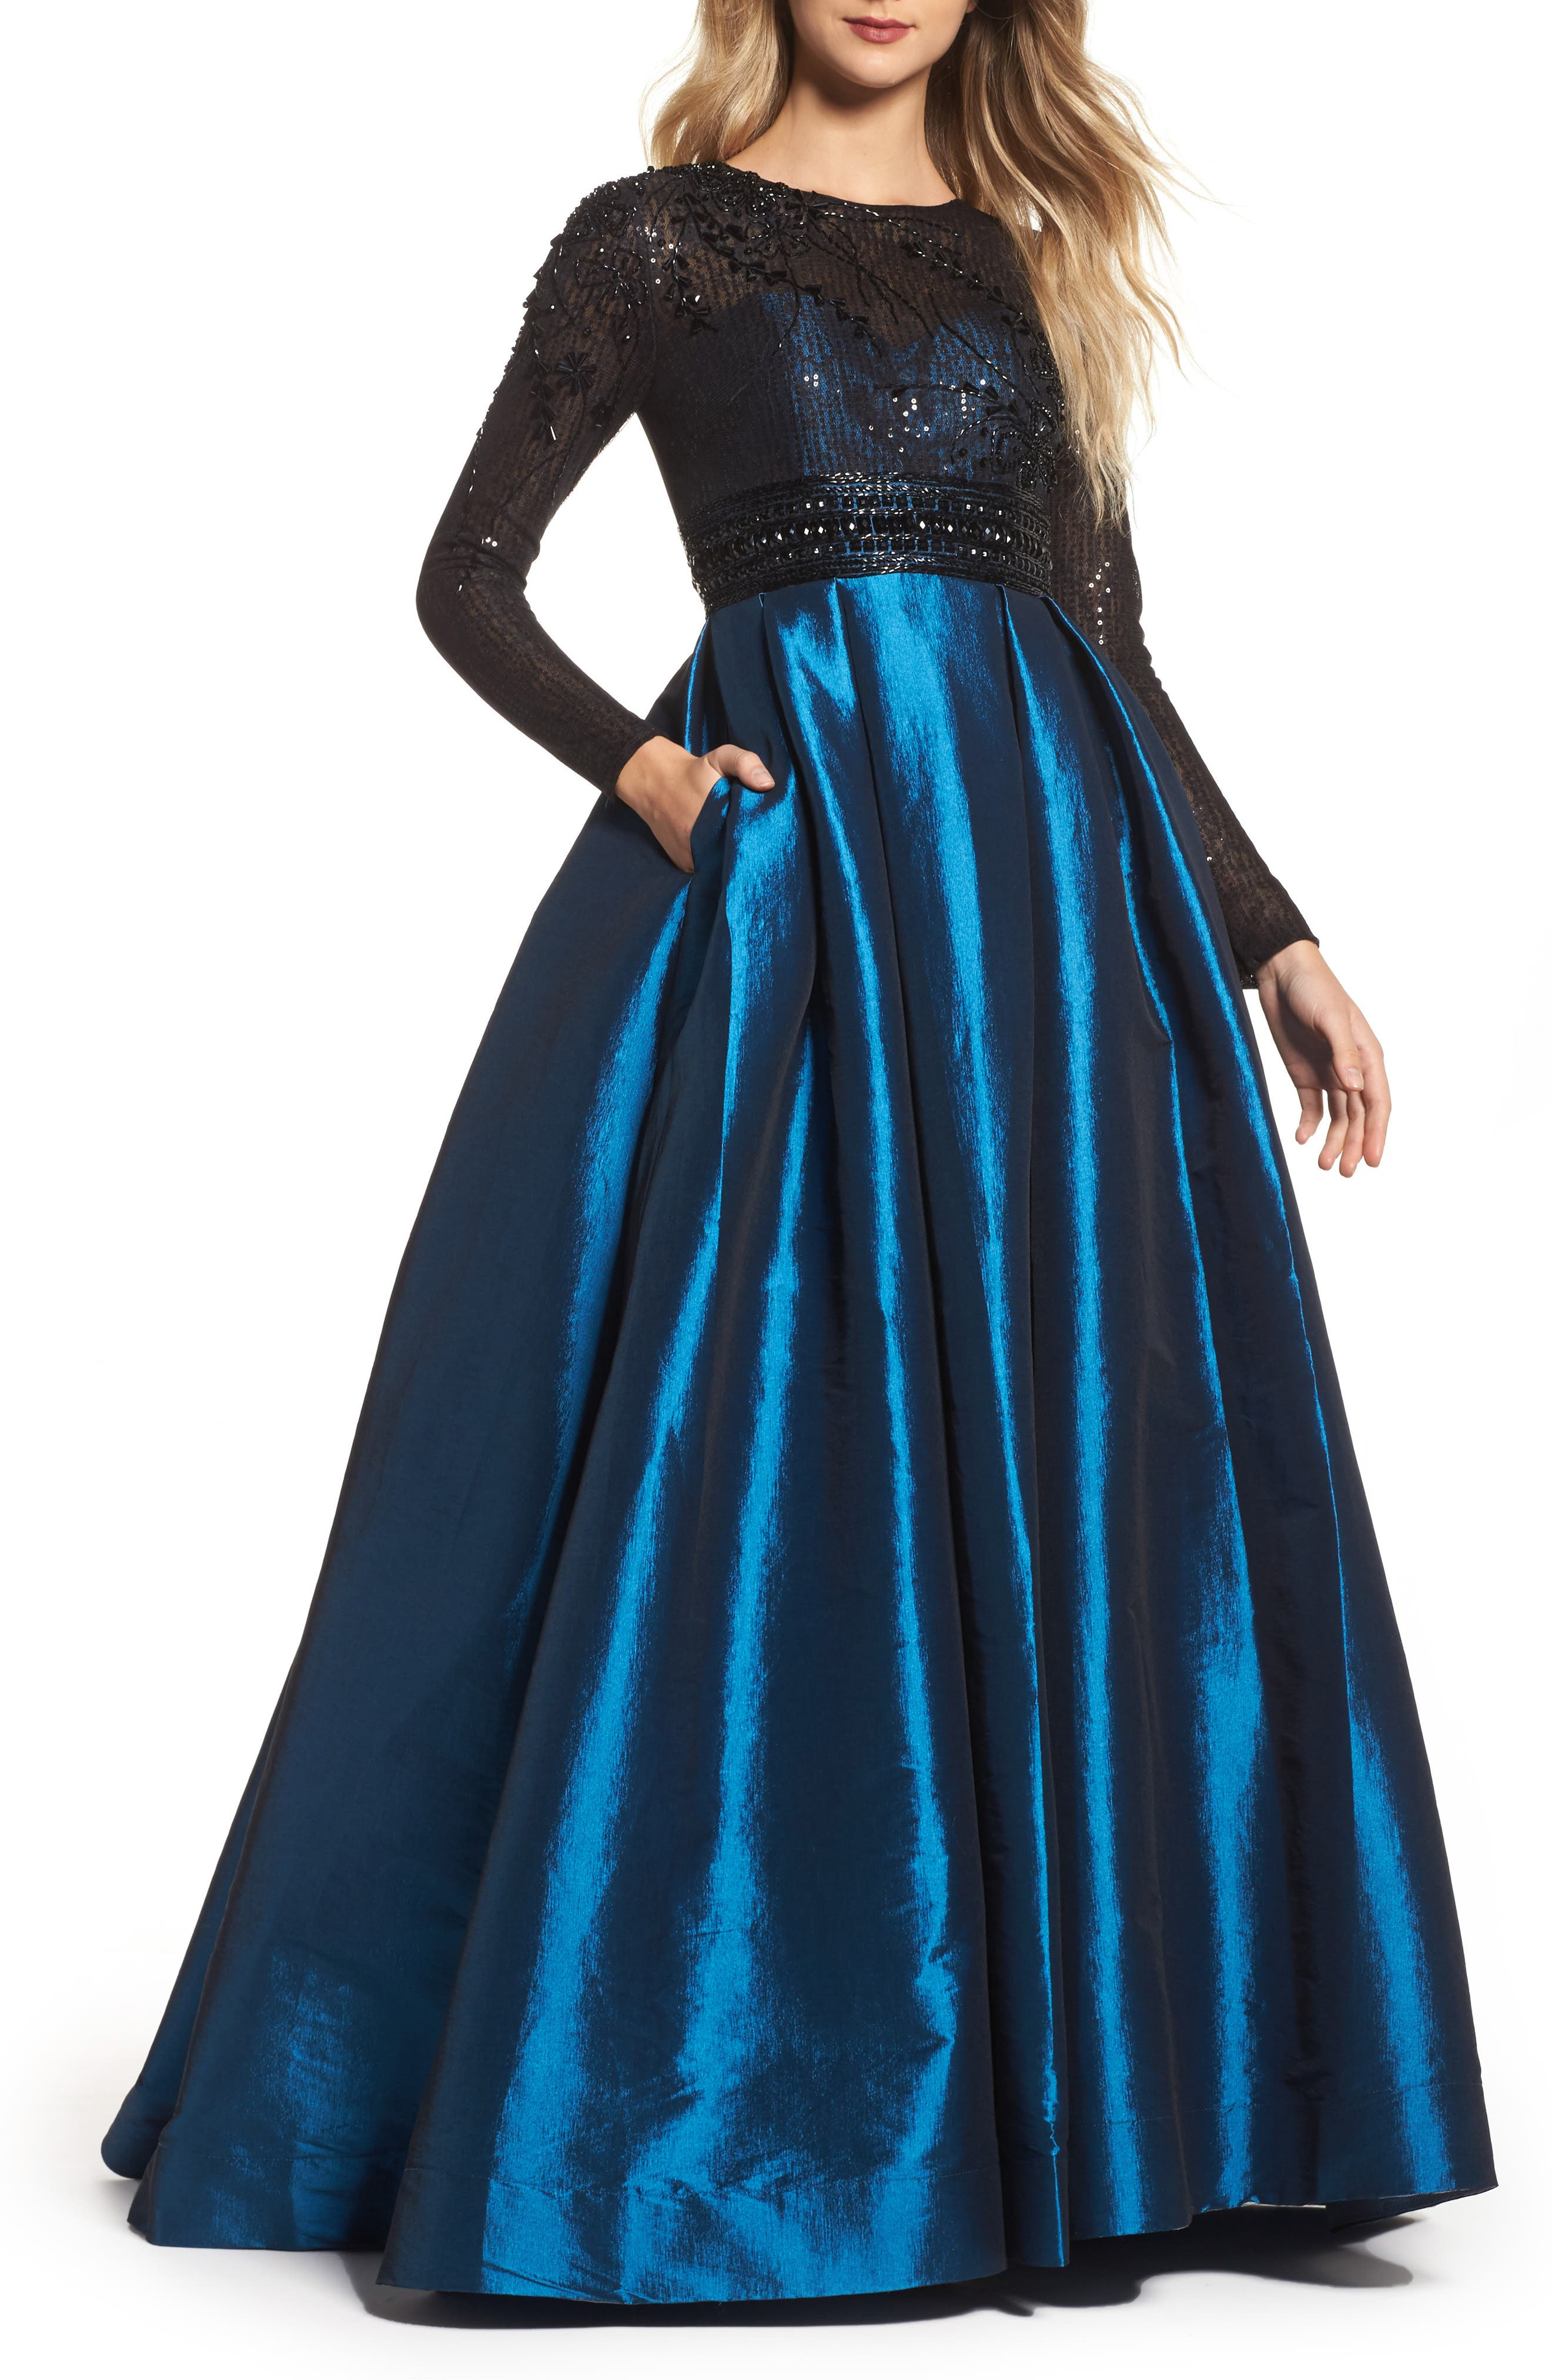 MAC DUGGAL Sequin Embellished High-Neck Illusion Long-Sleeve Taffeta Ball Gown in Teal